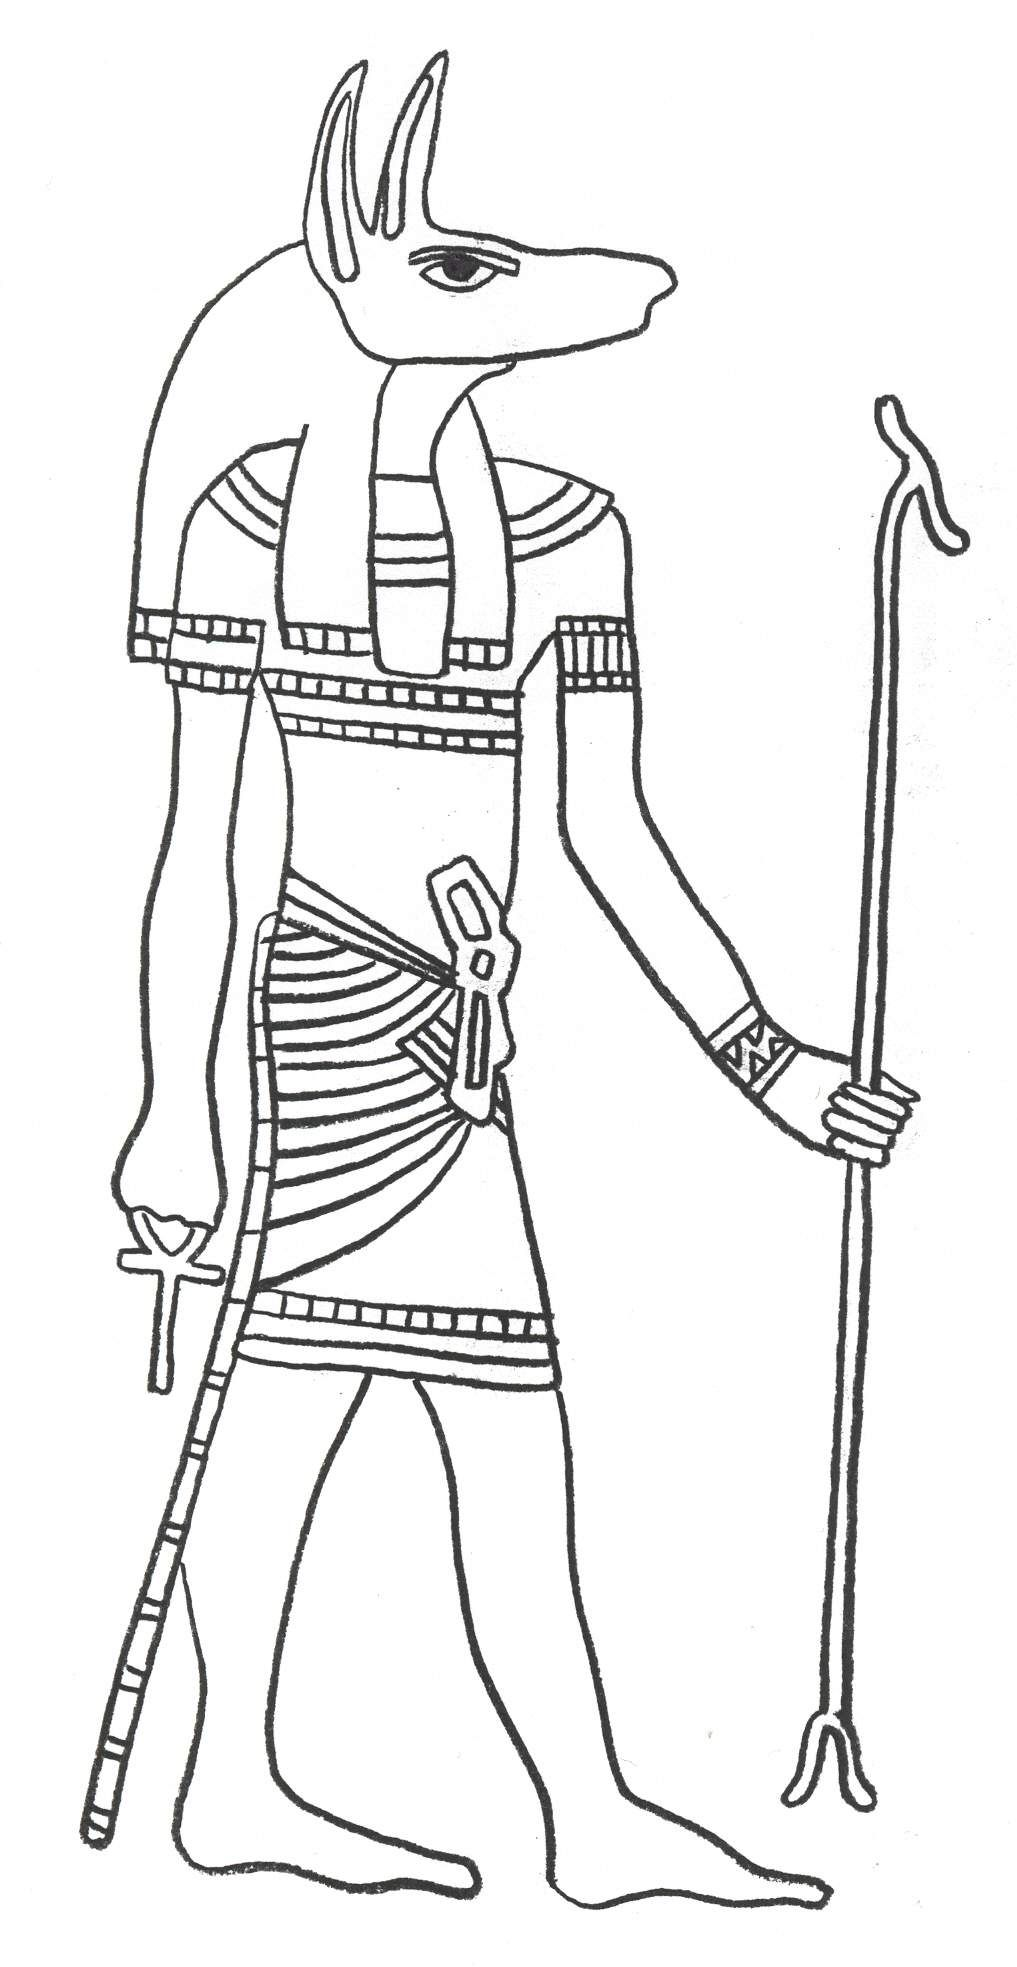 Huis Anubis Kleurplaten Printen.Top 10 Ancient Egypt Coloring Pages For Toddlers Egyptenaren